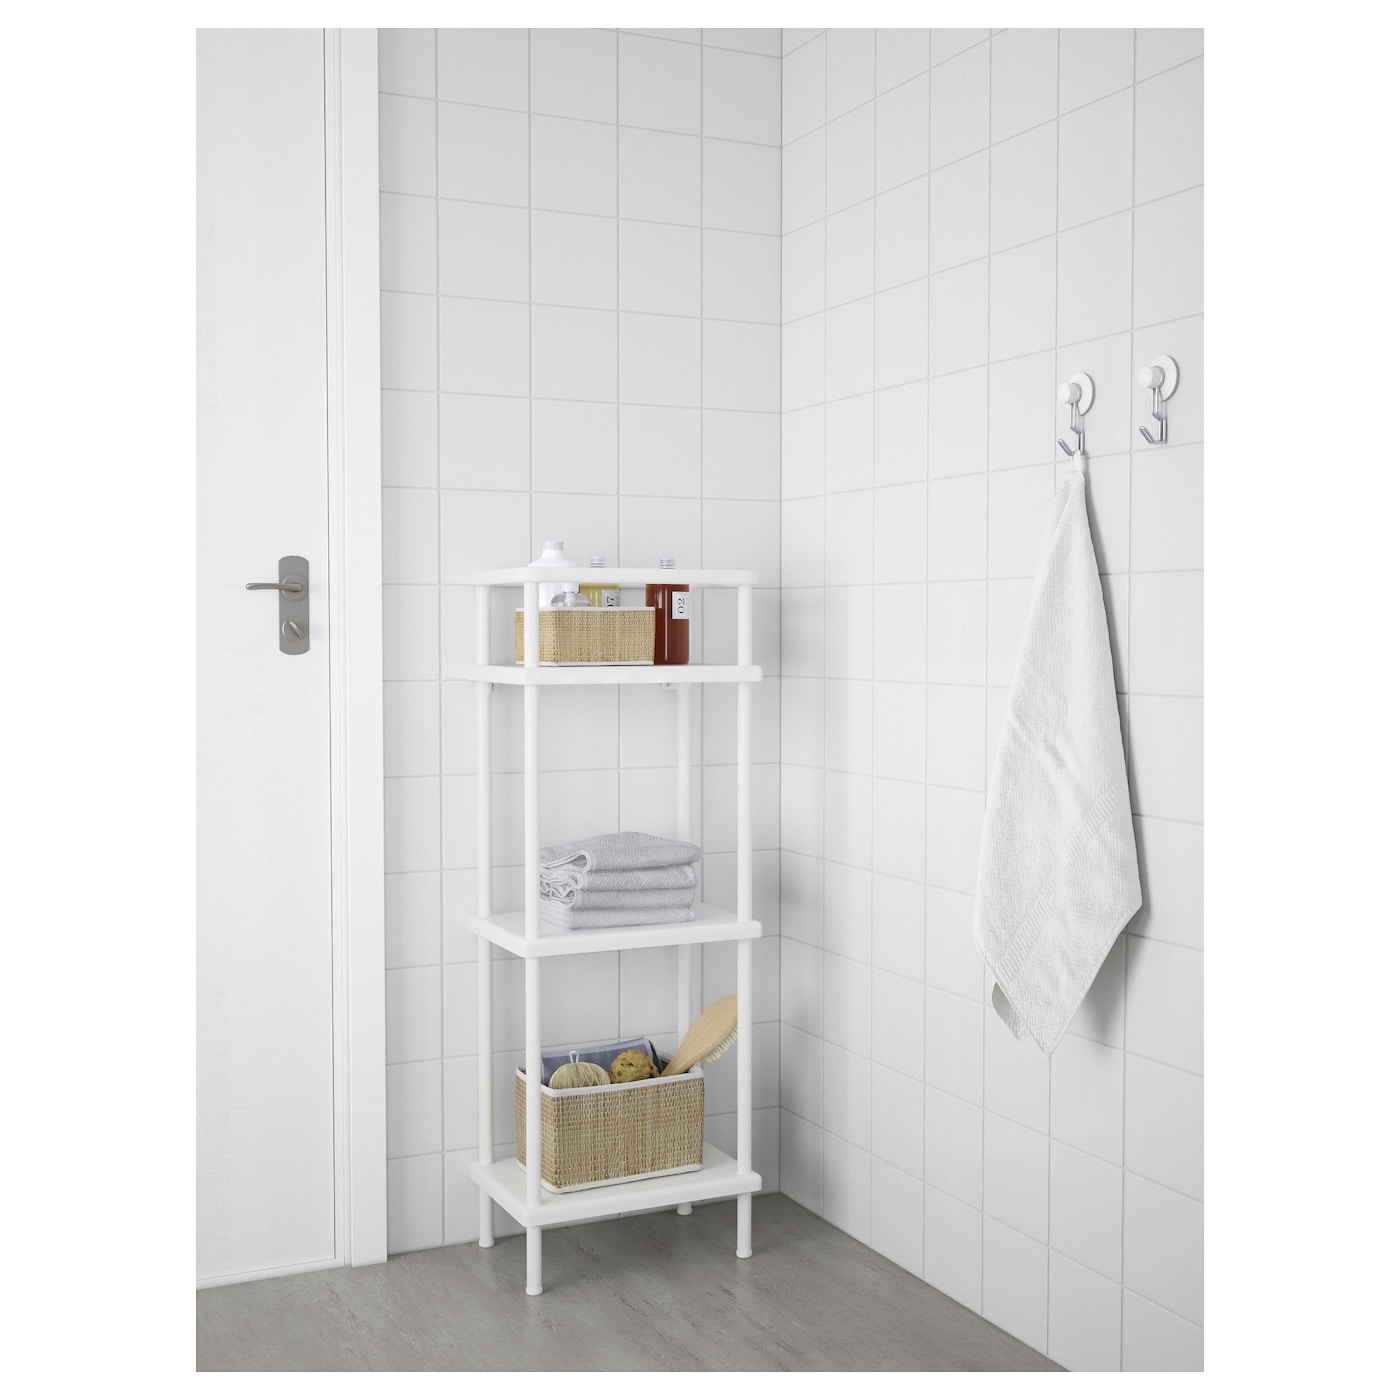 care furniture doors sink shower amazing modern of great cabinet bathroom painted glass ikea with back kitchen silvern